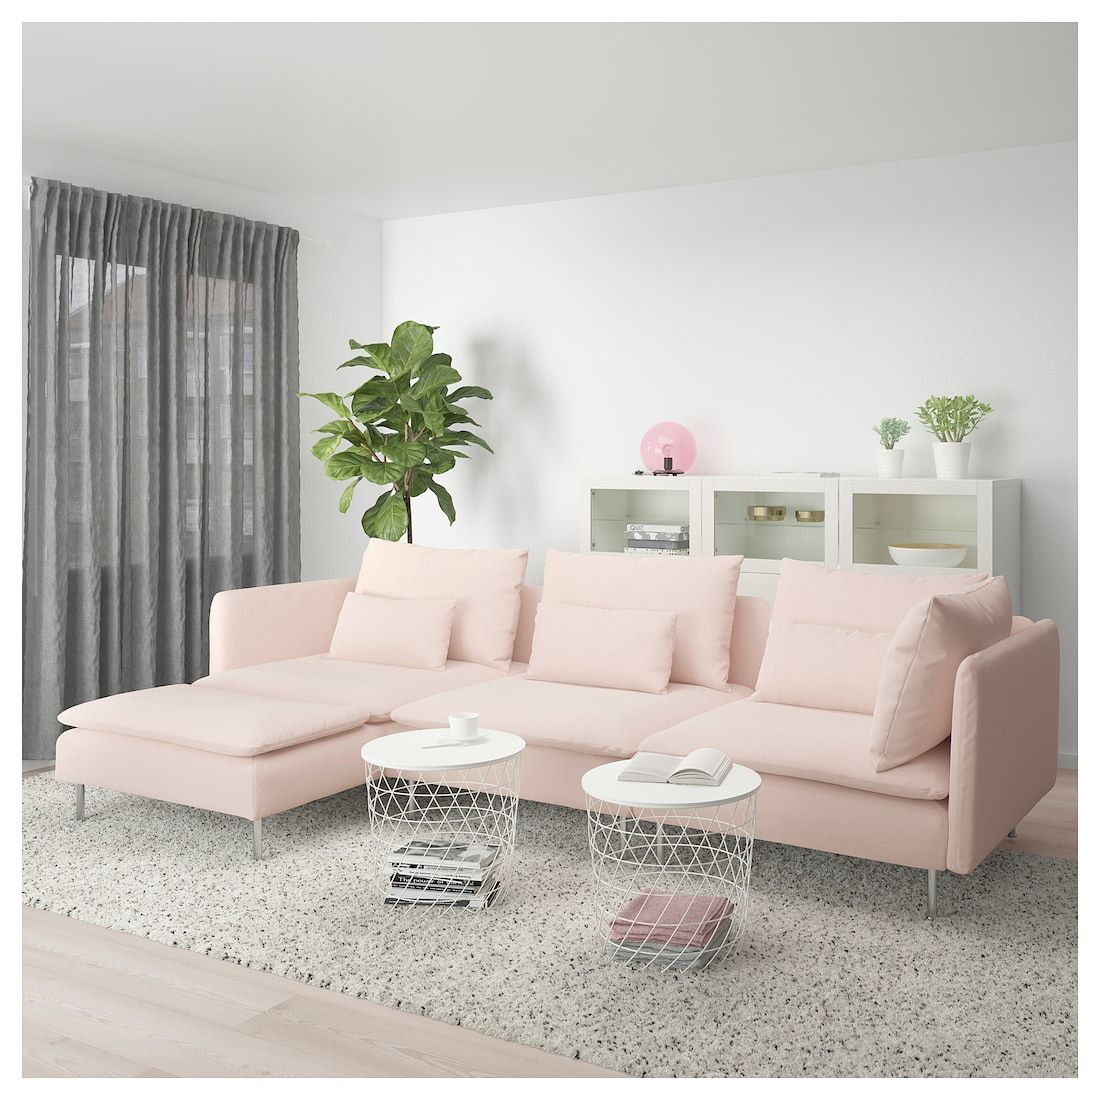 SÖDERHAMN Sectional, 4 seat with chaise, Samsta light pink